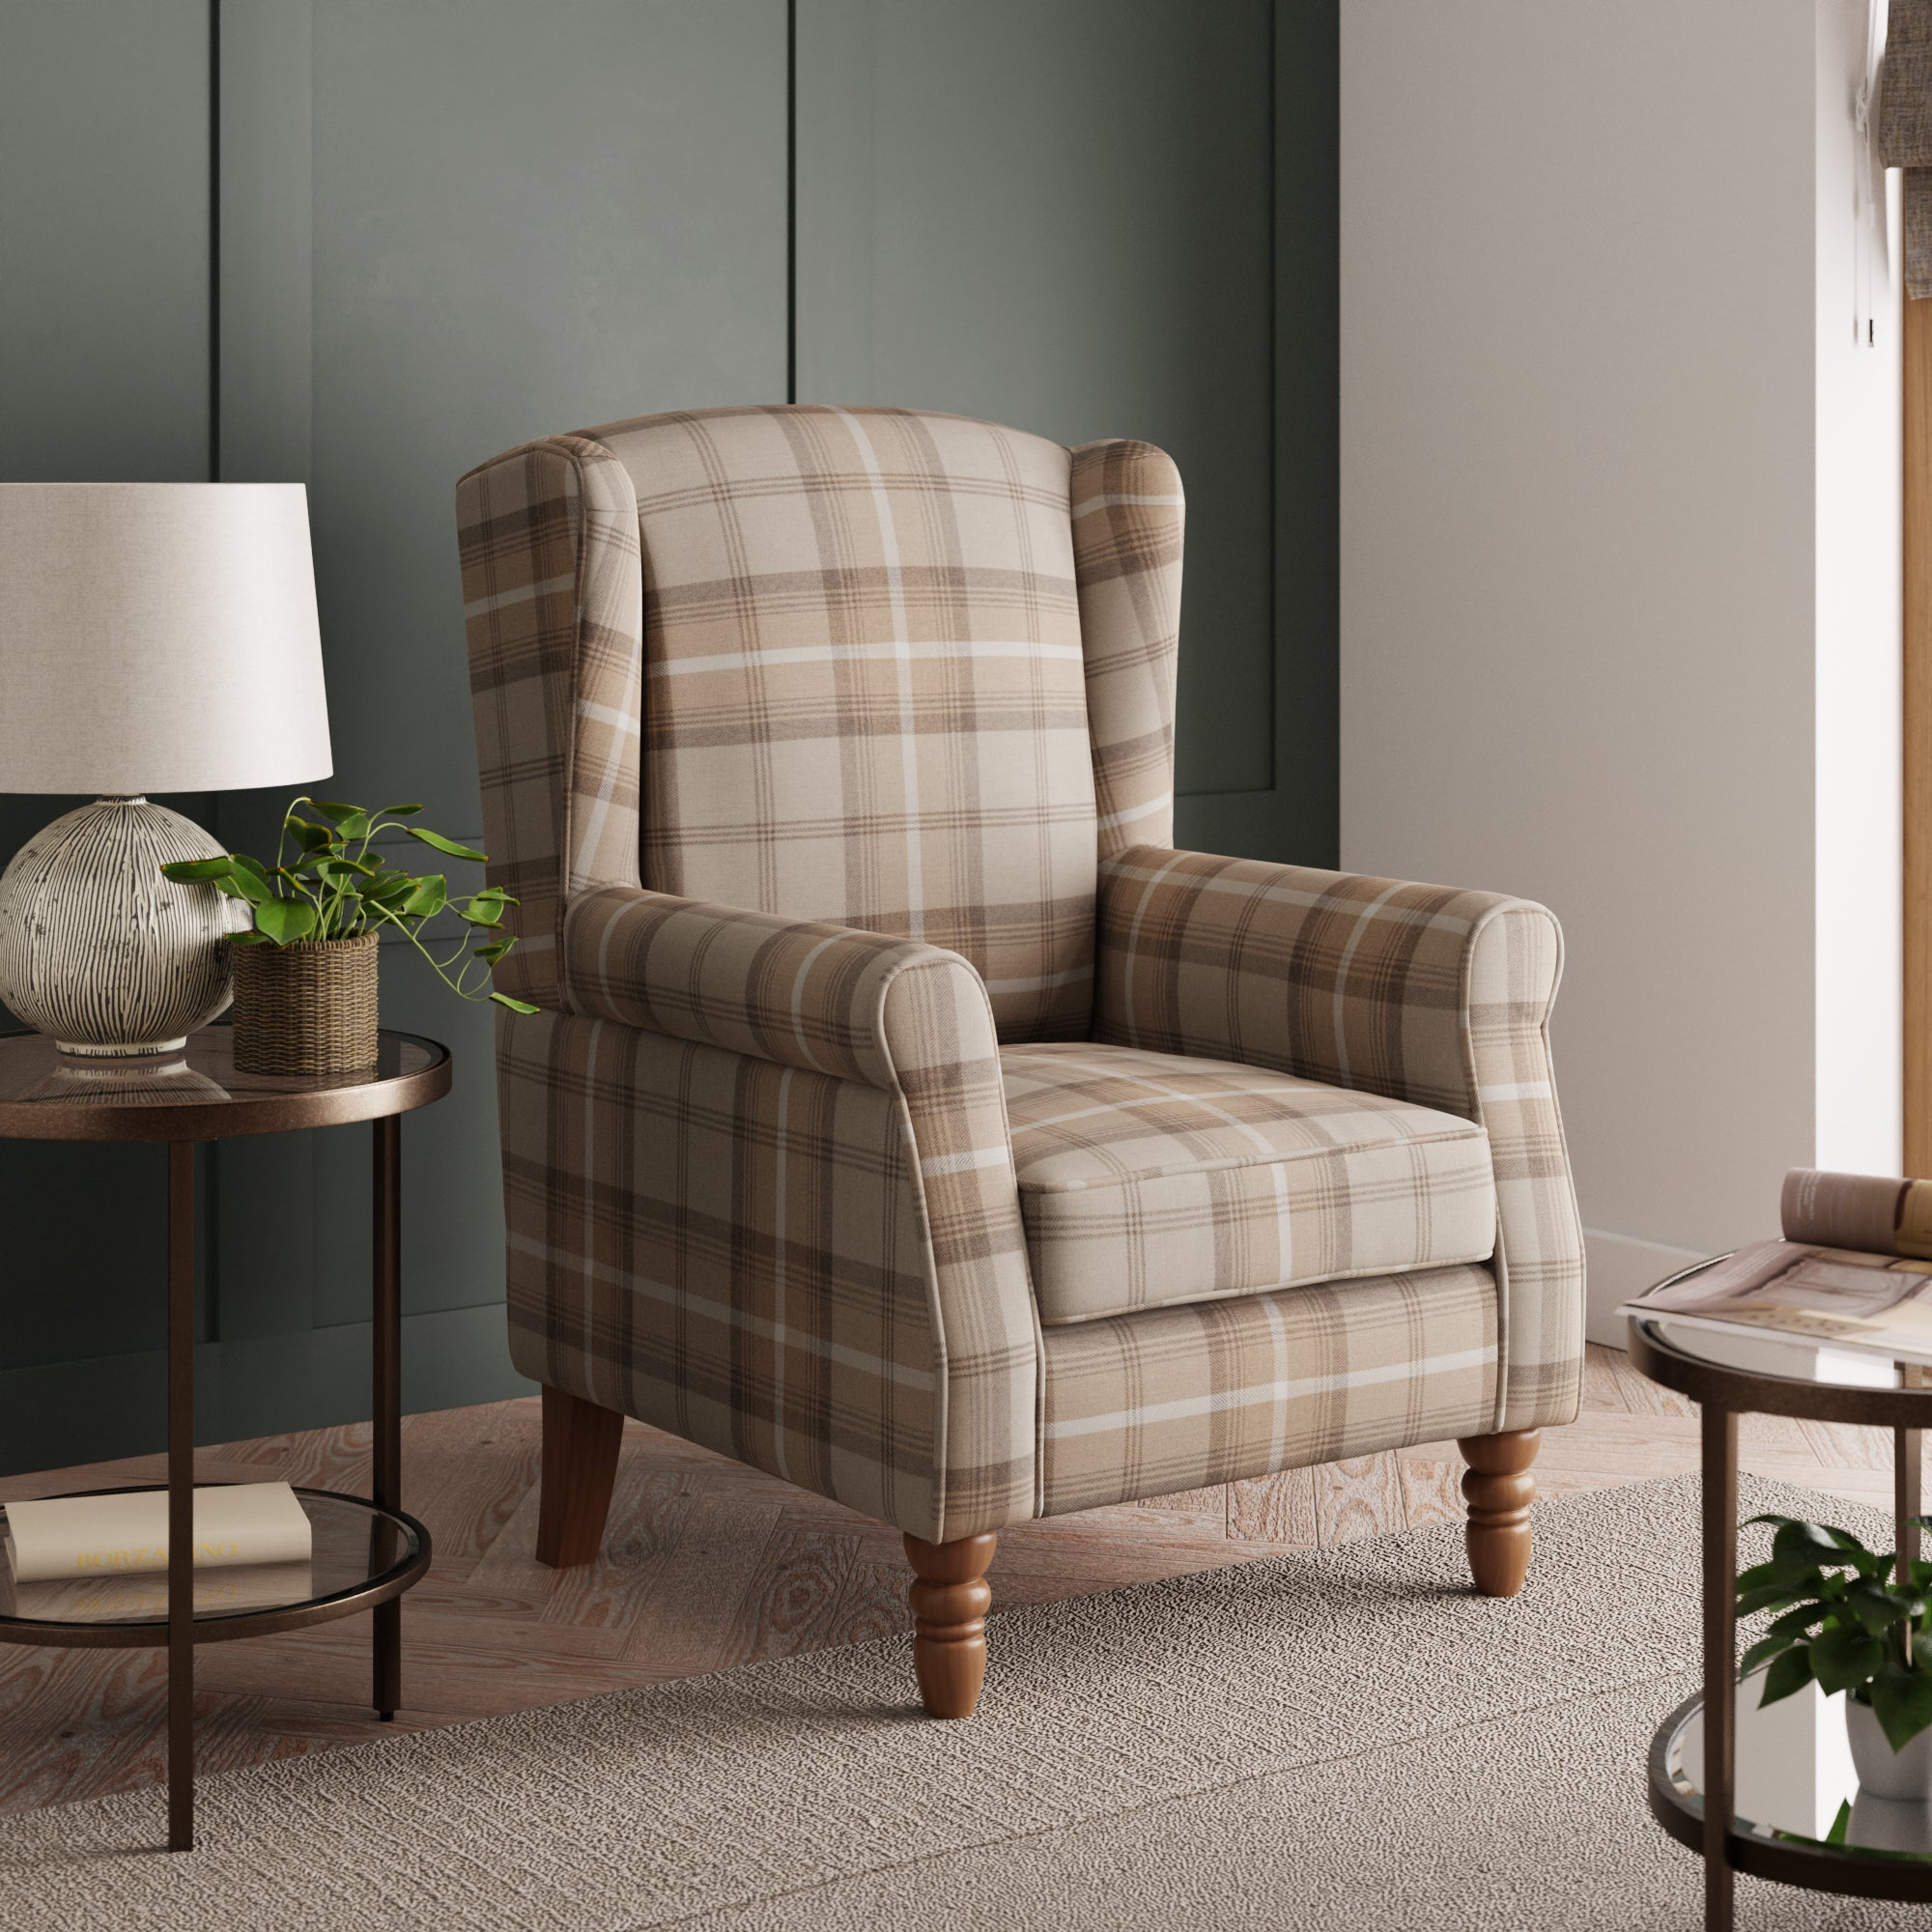 Oswald Check Wingback Armchair - Natural Brown, Blue and White